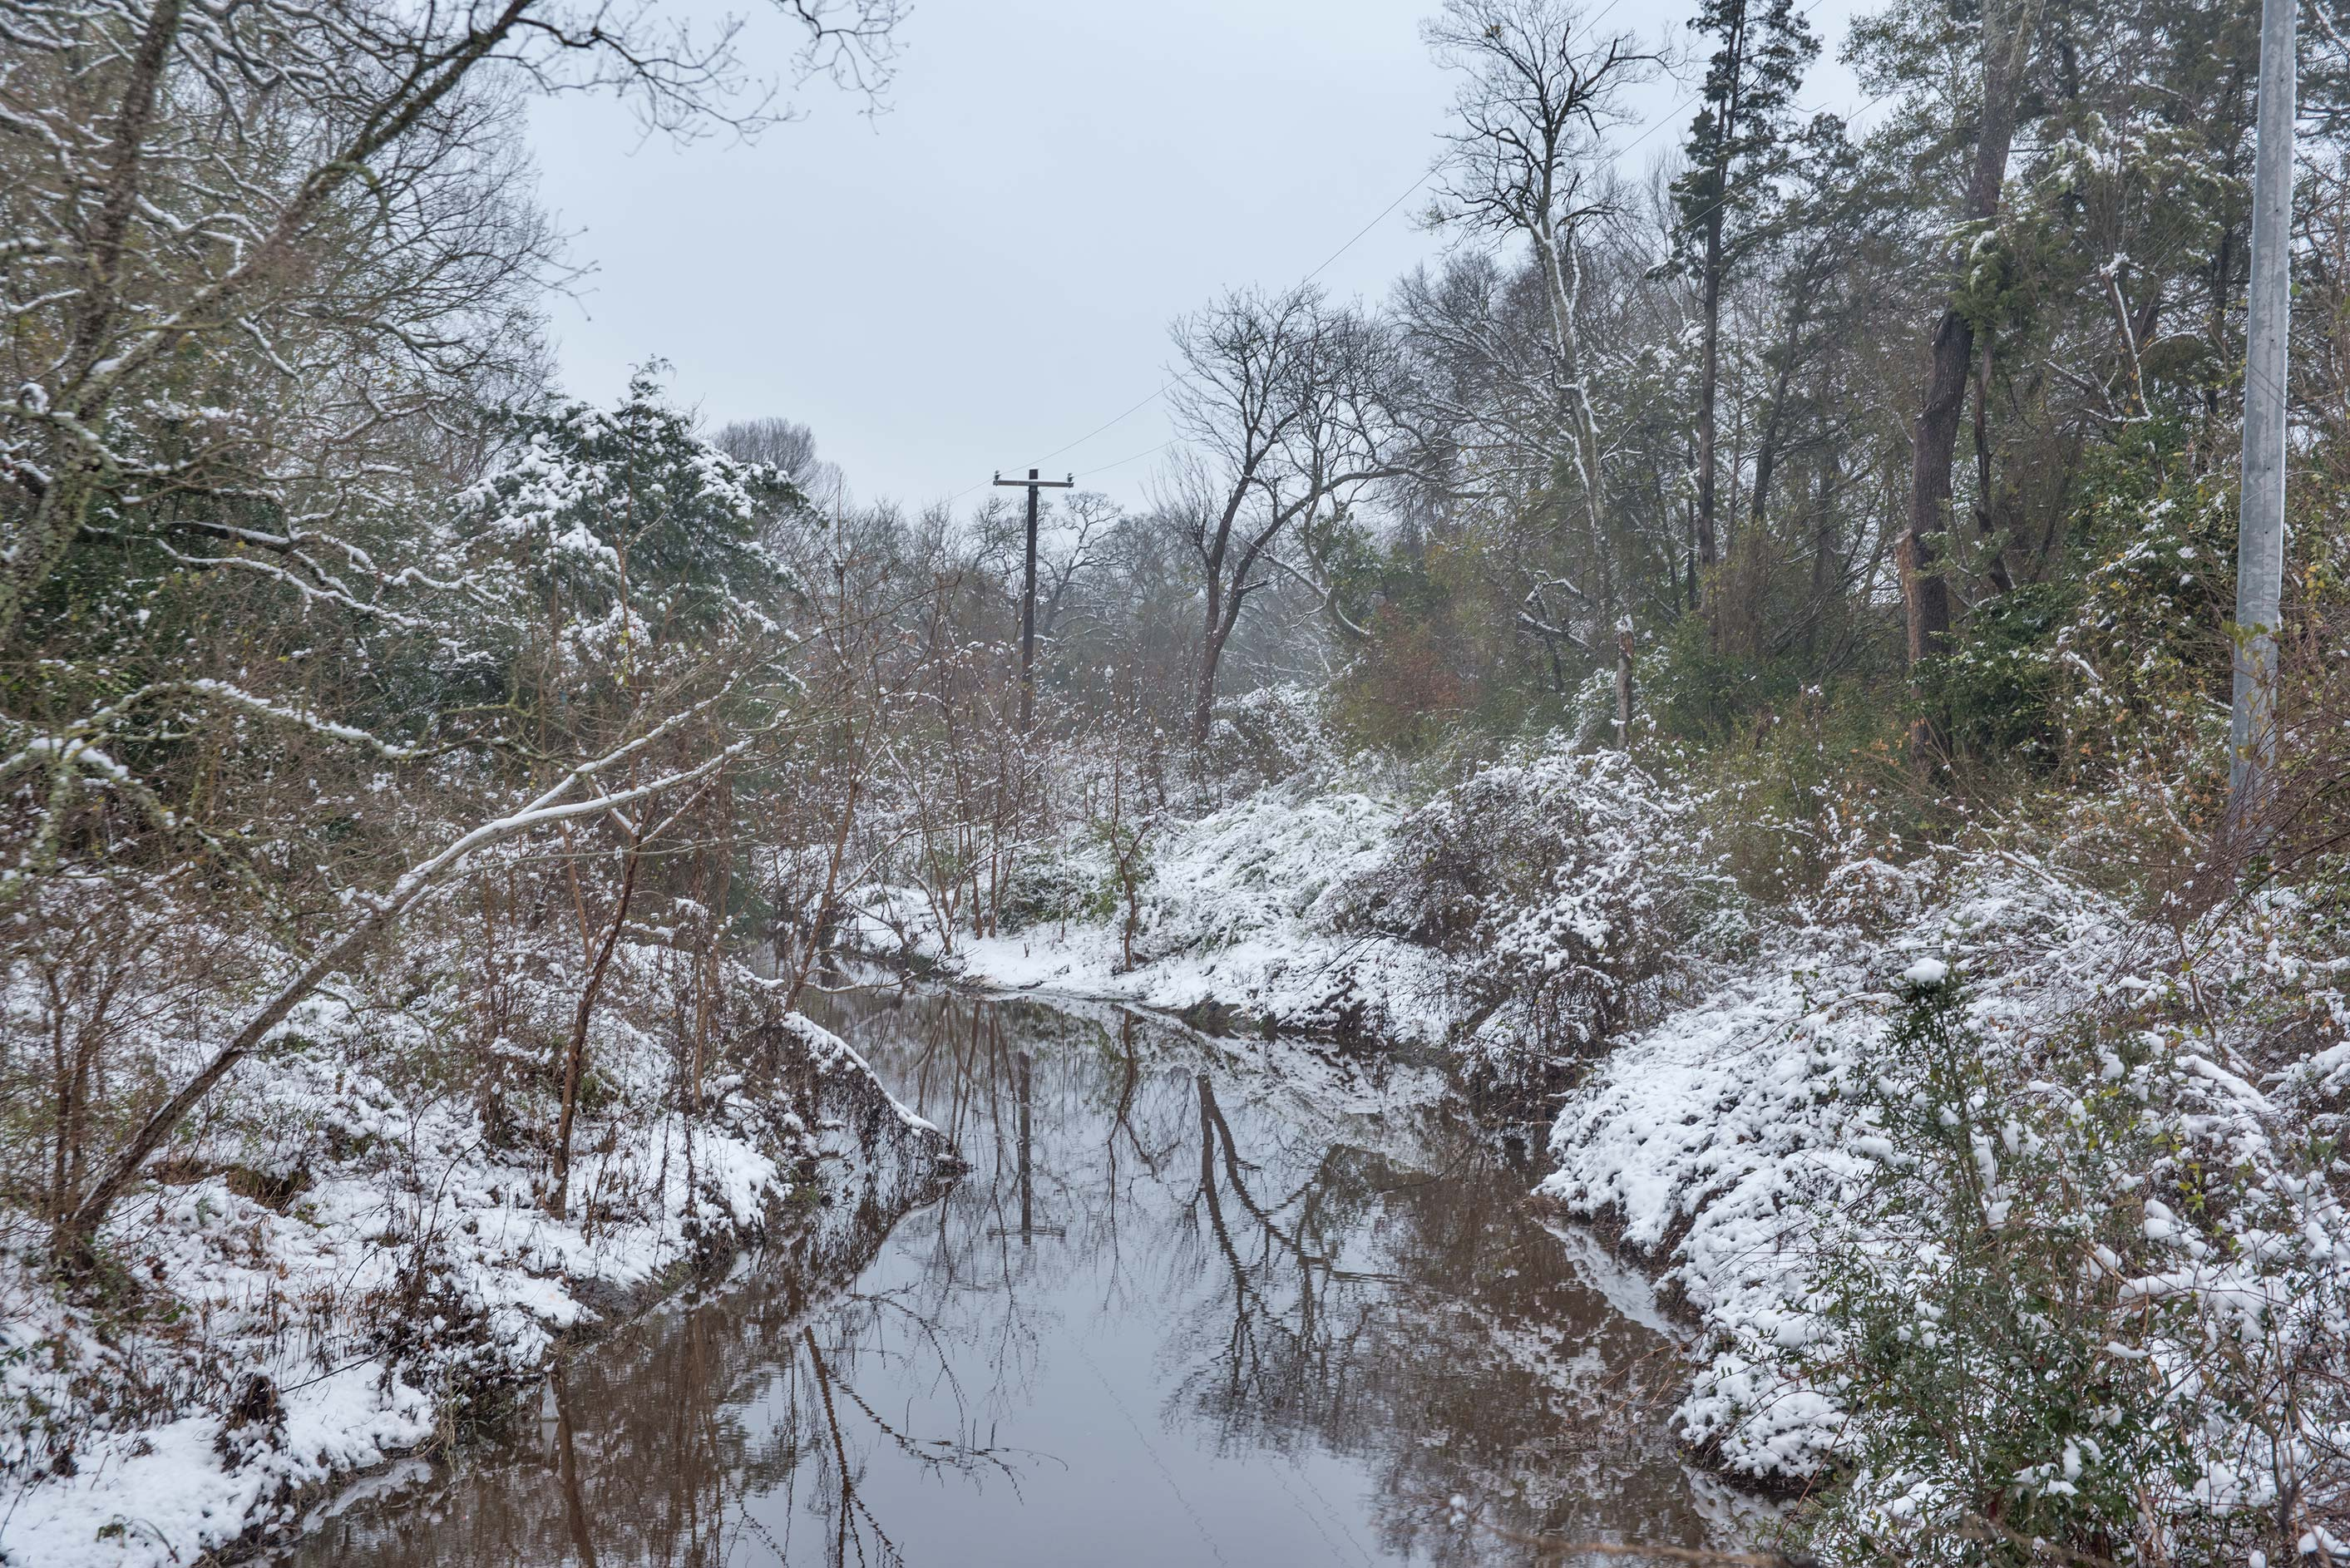 The creek in snow in Bee Creek Park. College Station, Texas